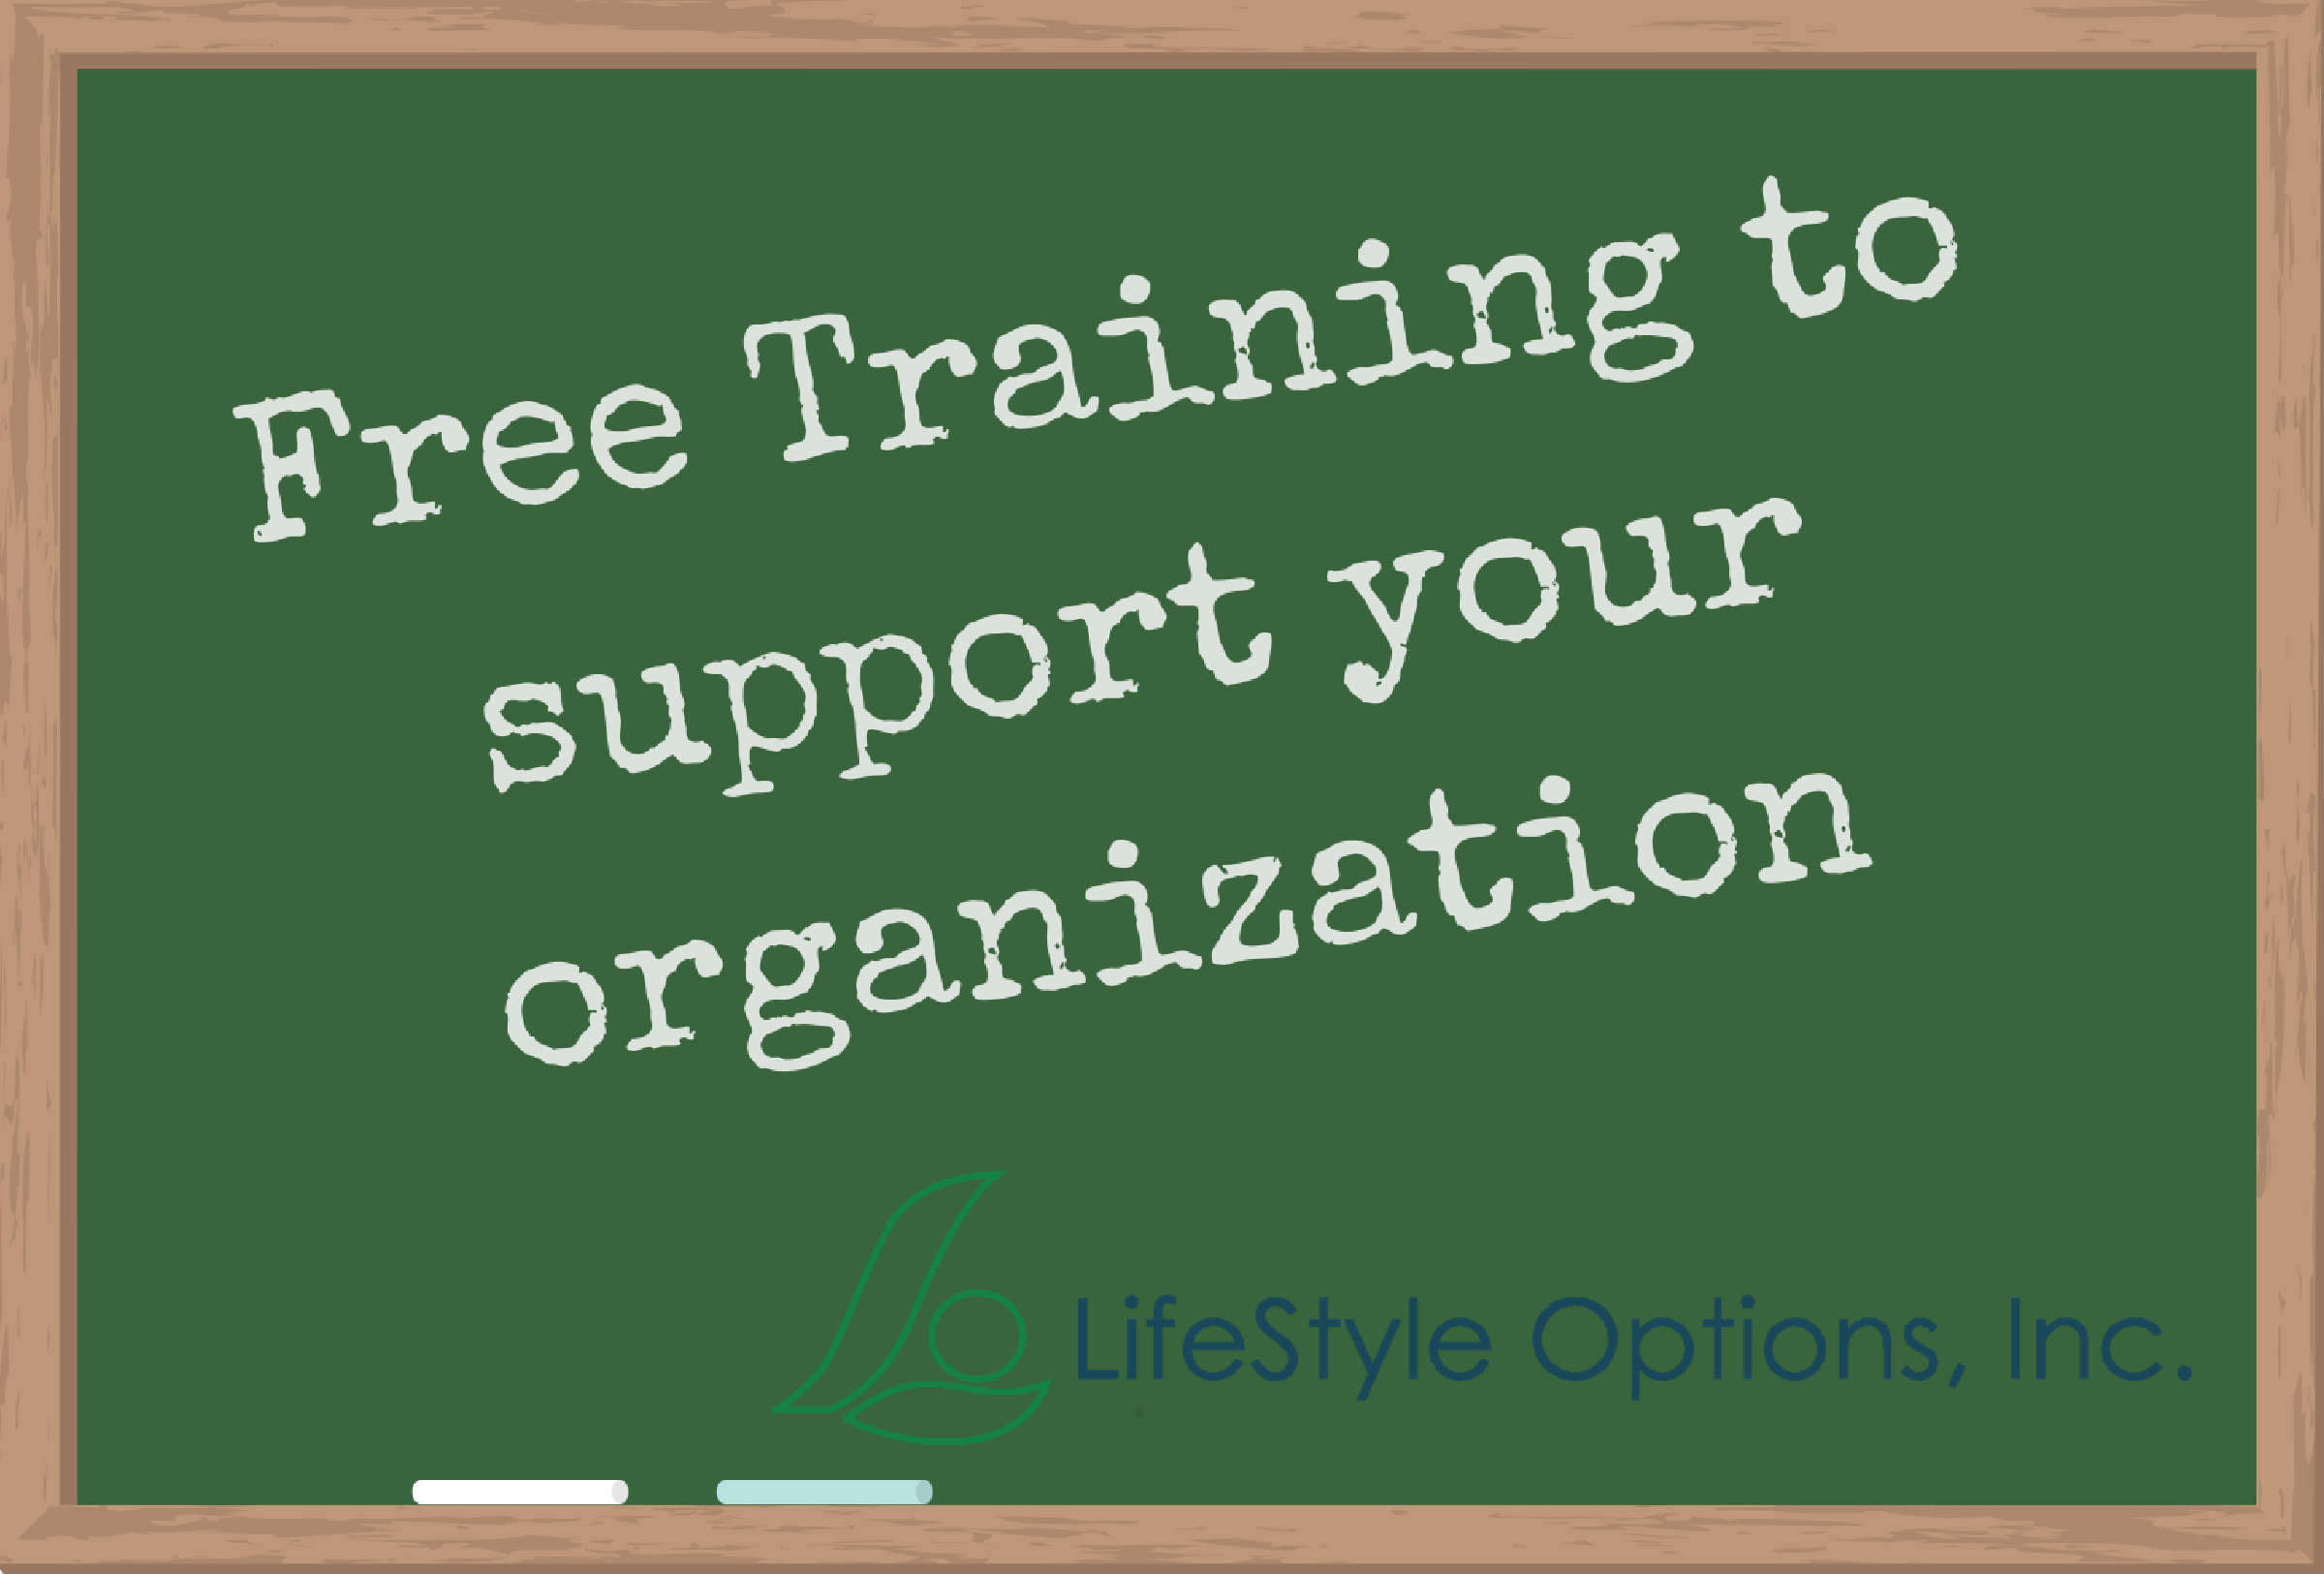 Free Training and CEUs Chalkboard.png